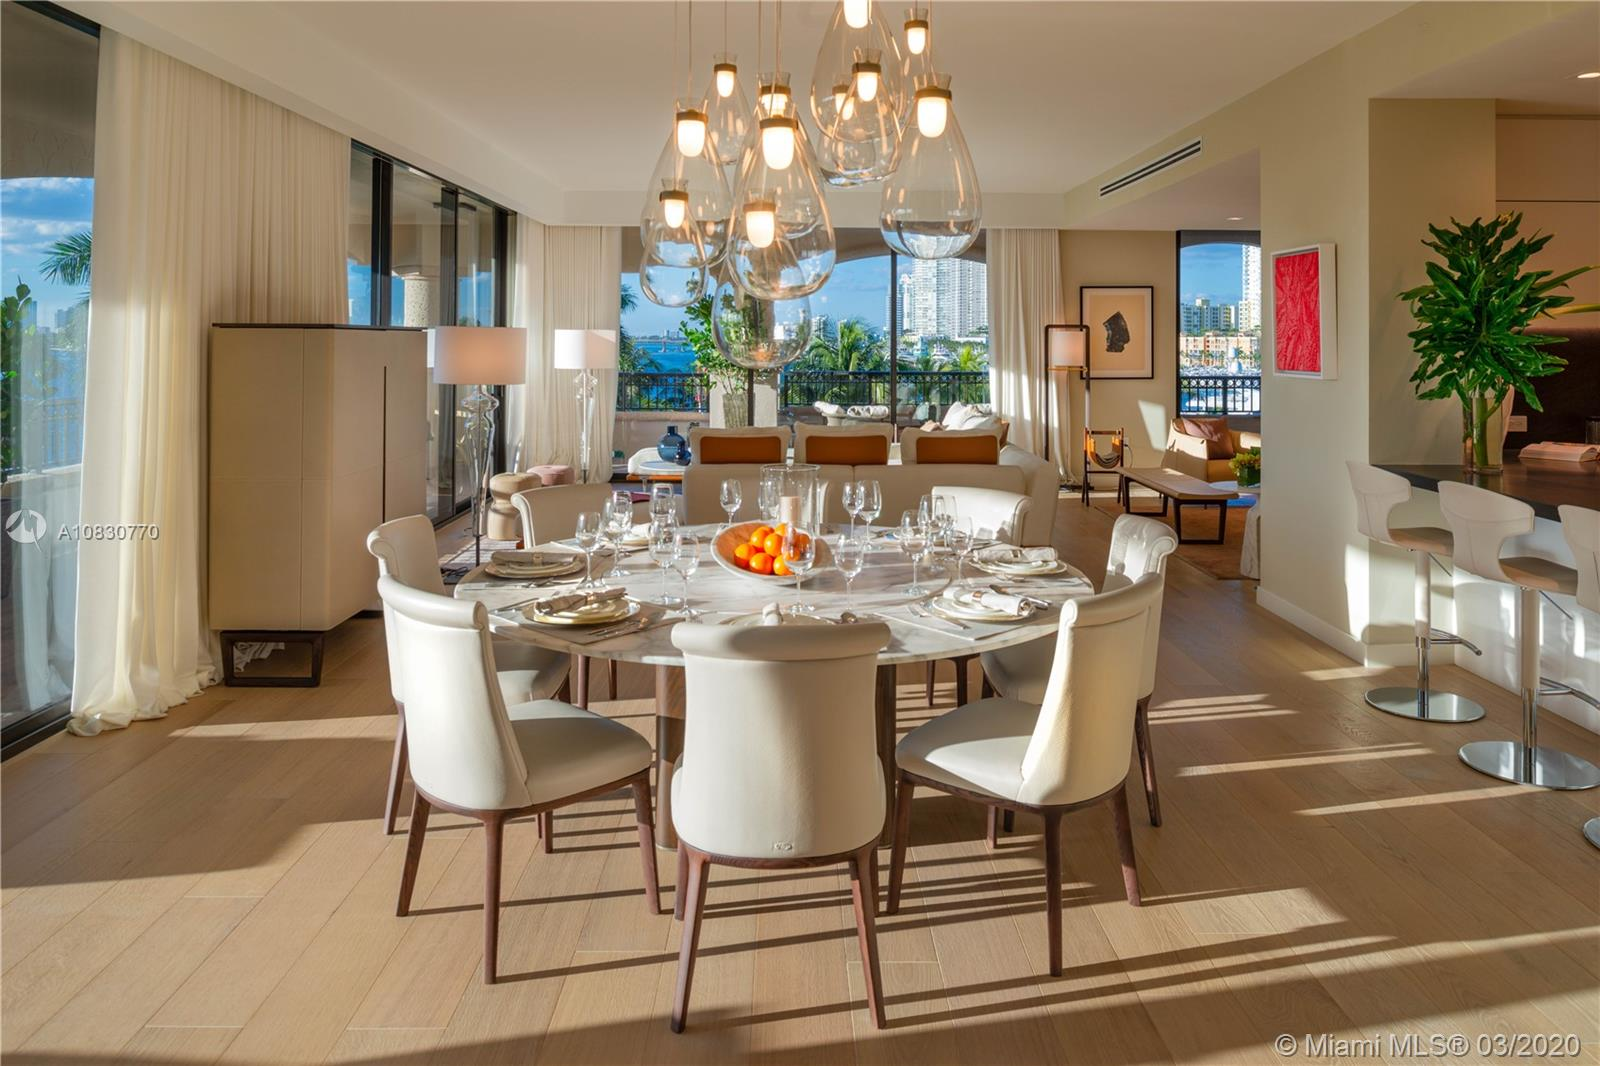 6841 Fisher Island Drive, Unit #6841 Luxury Real Estate